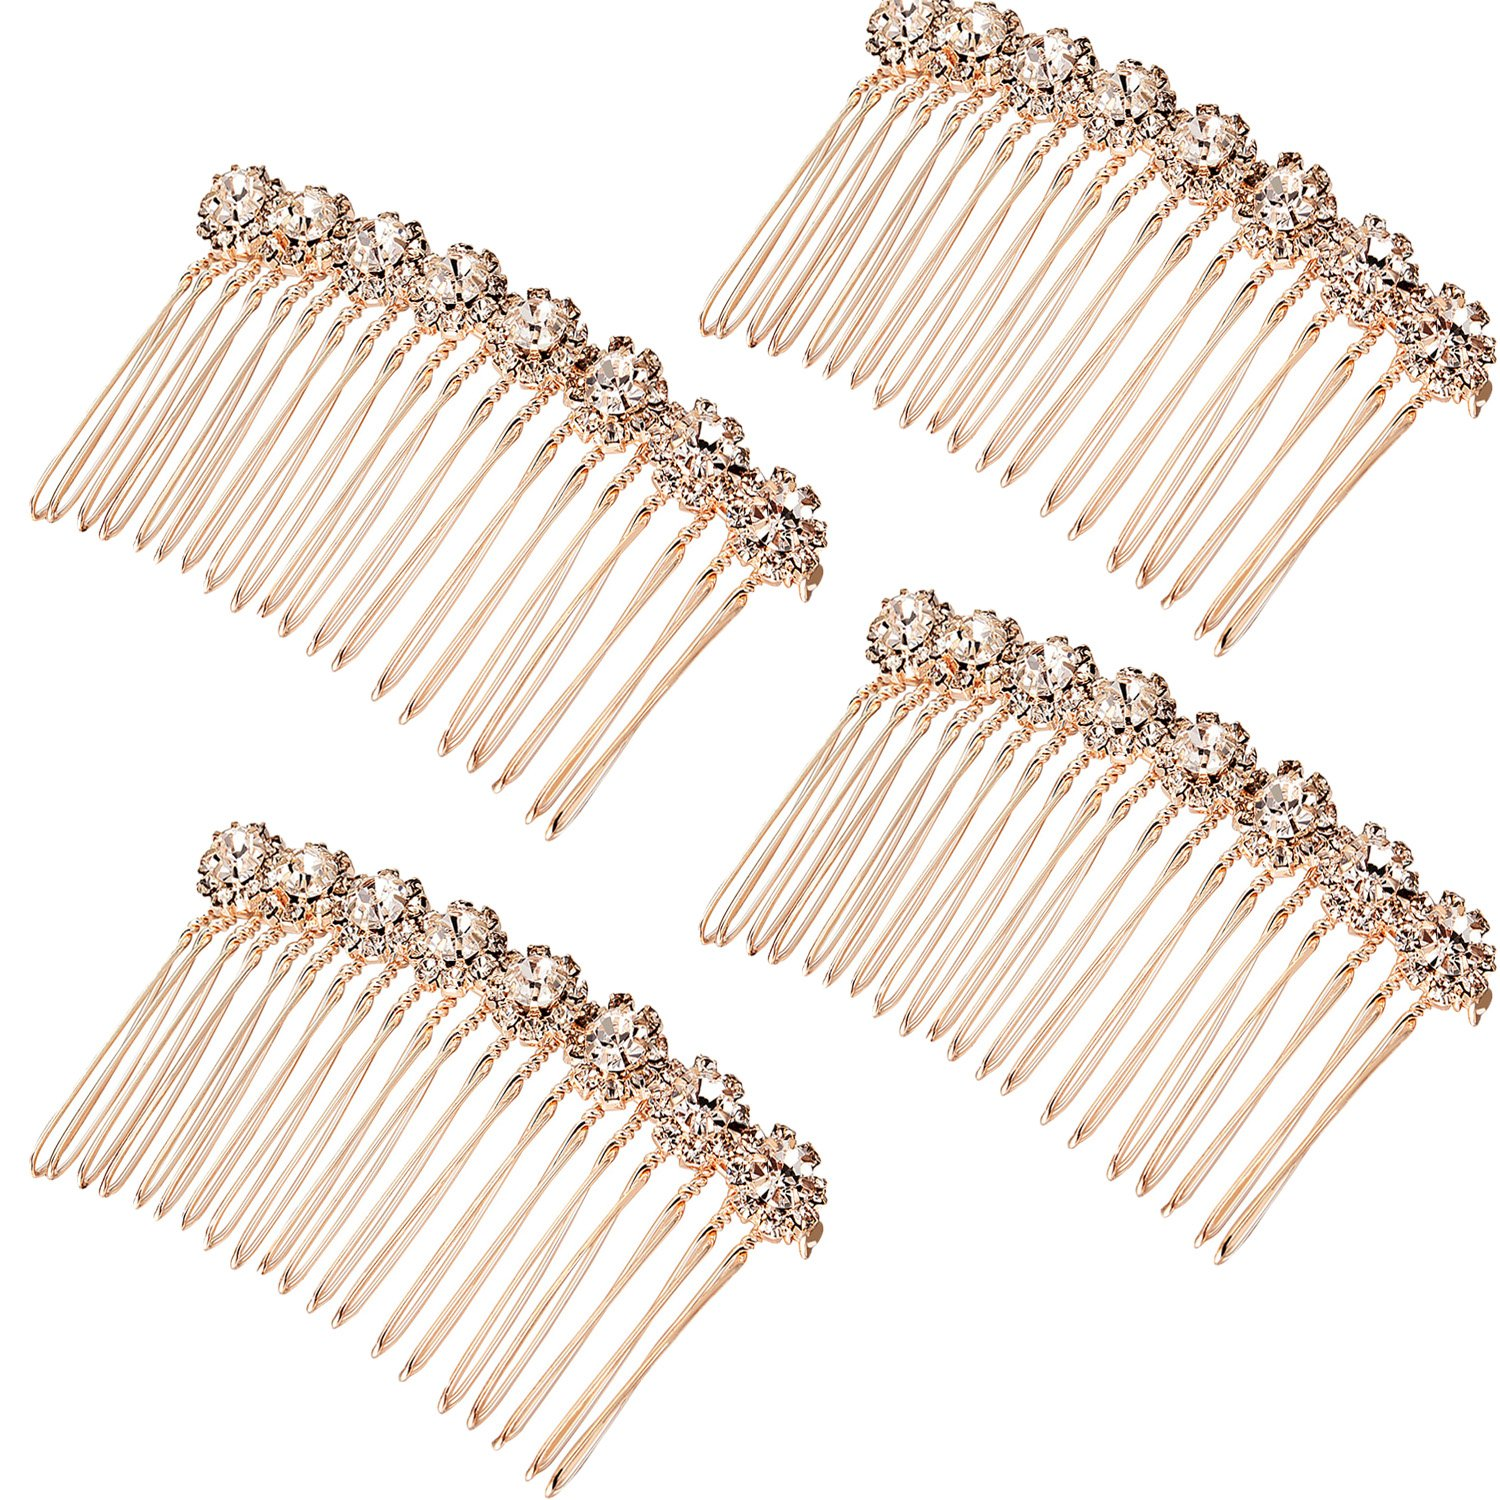 4 Pack Rhinestone Alloy Flower Hair Side Combs Wedding Bridal Jewelry Hair Clips for Women, Rose Gold Gejoy